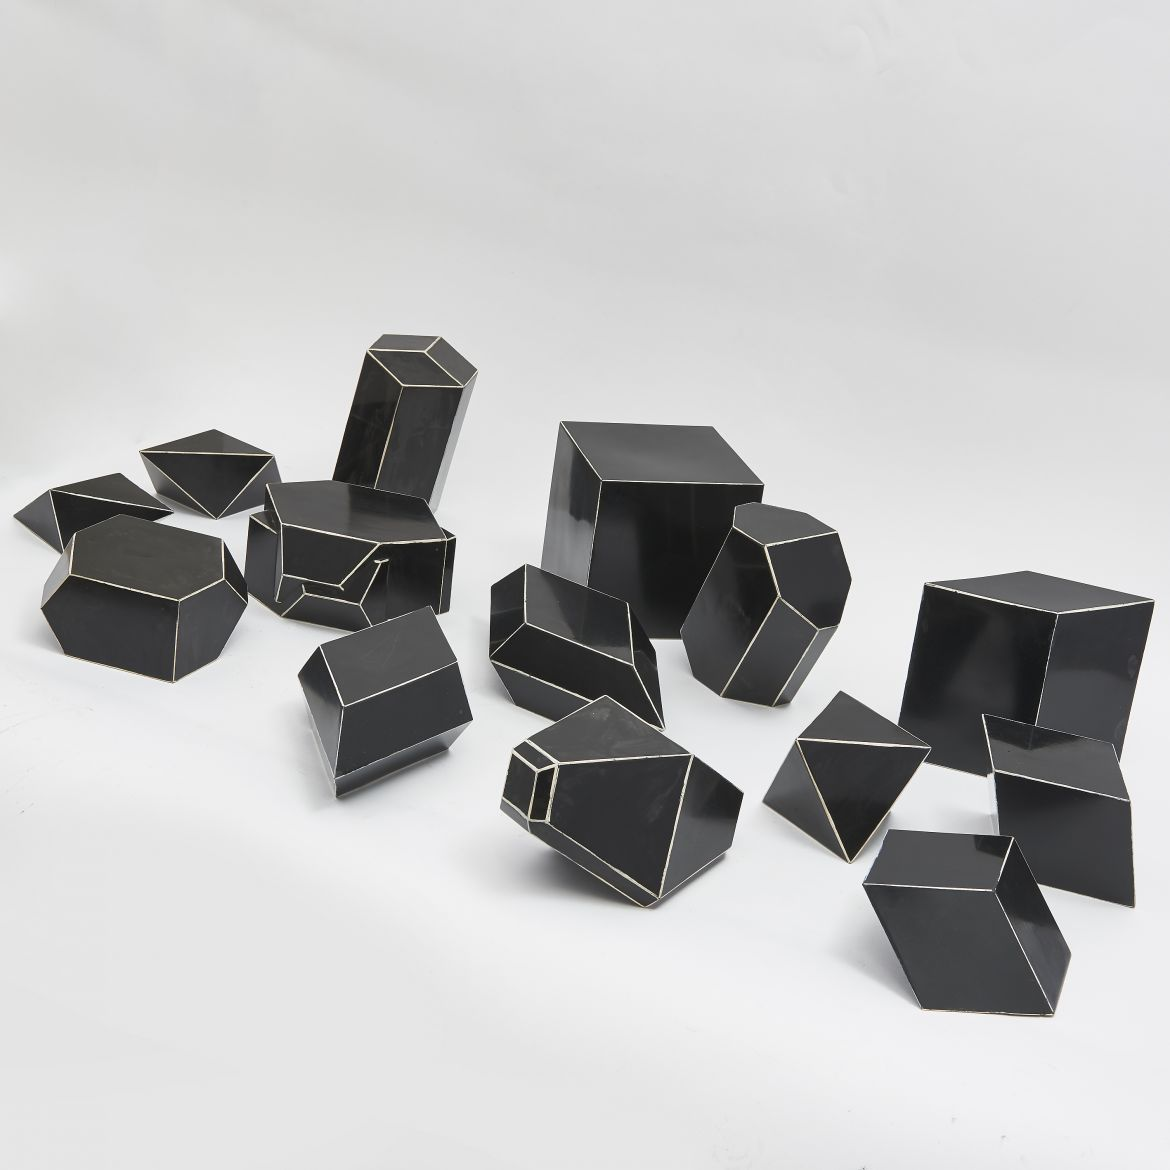 Collection Bakelite Geometric Shapes